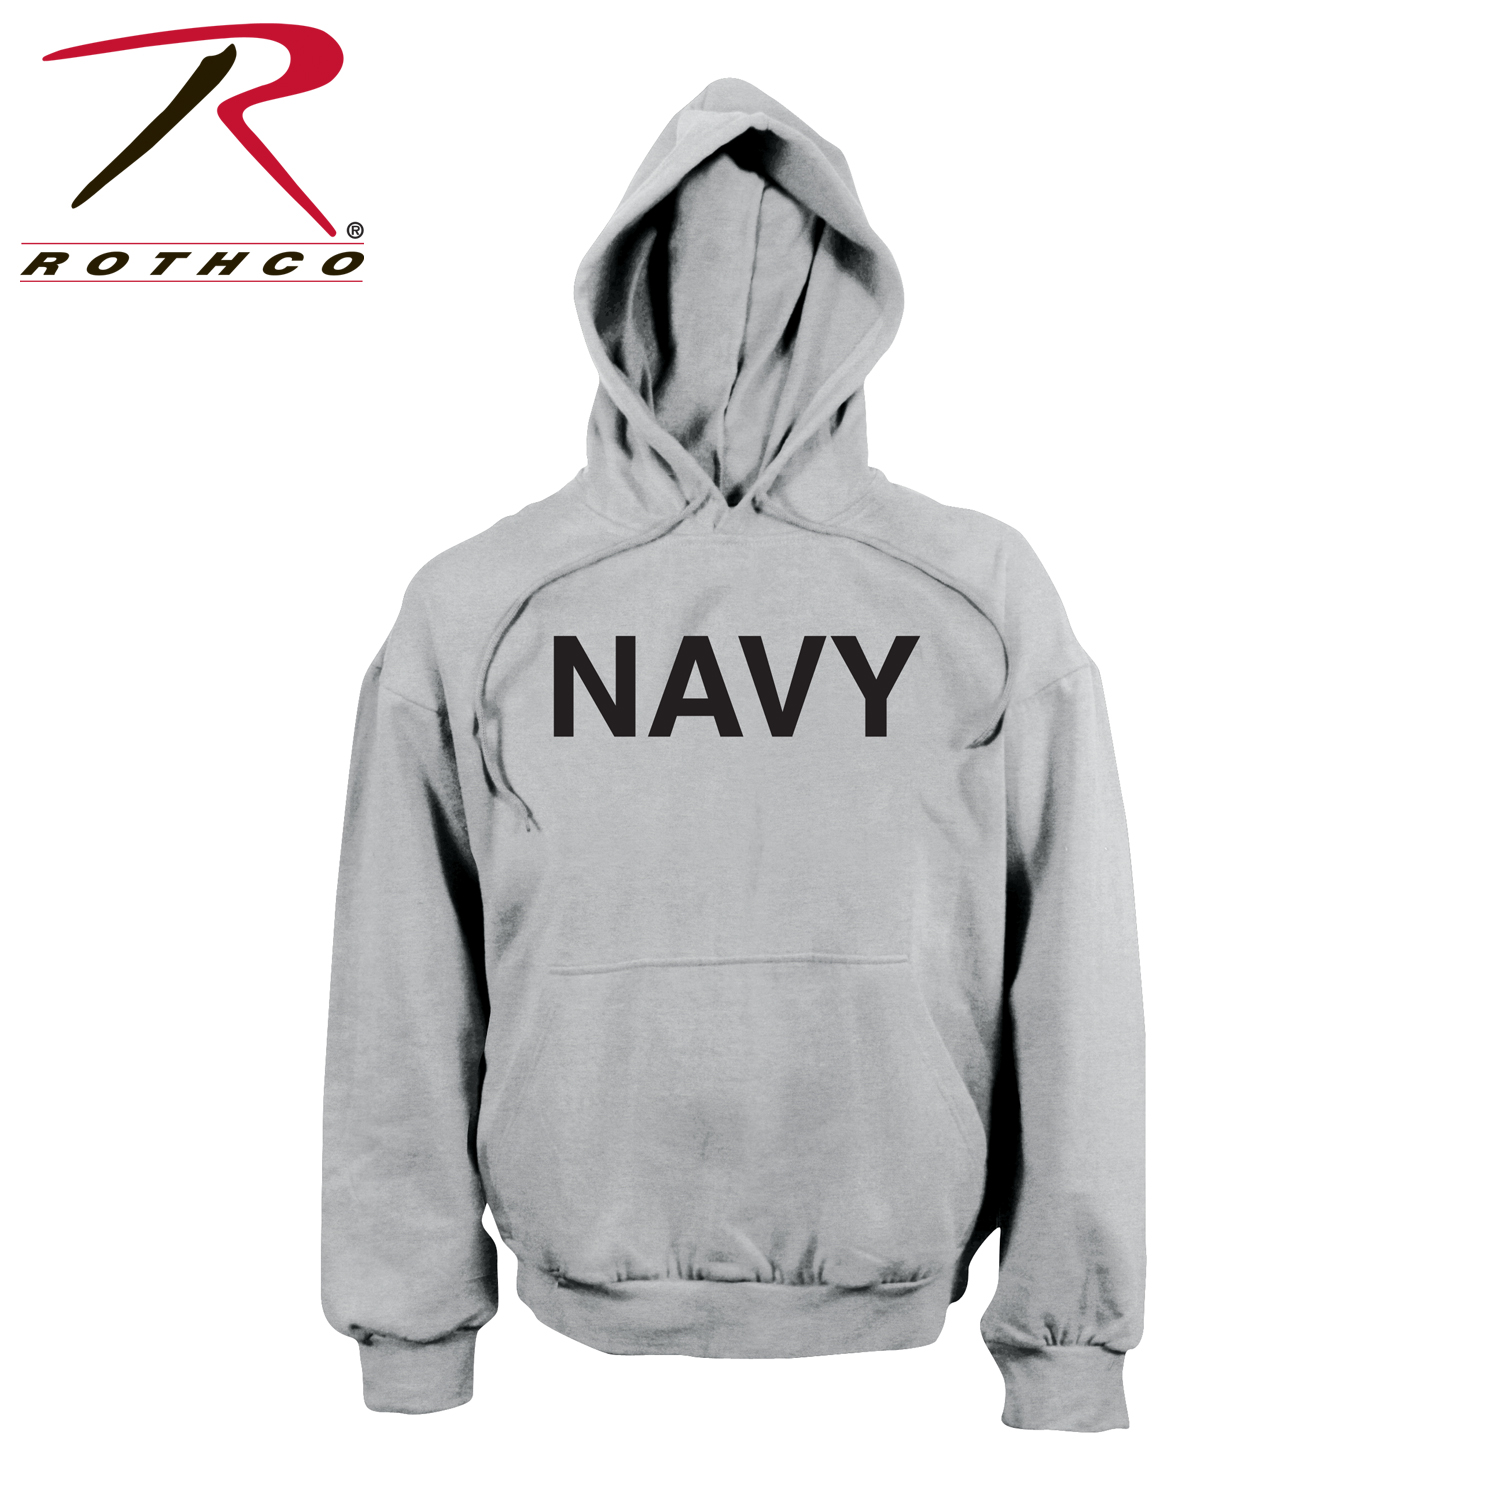 d7826b13 Rothco Navy Pullover Hooded Sweatshirt - Grey